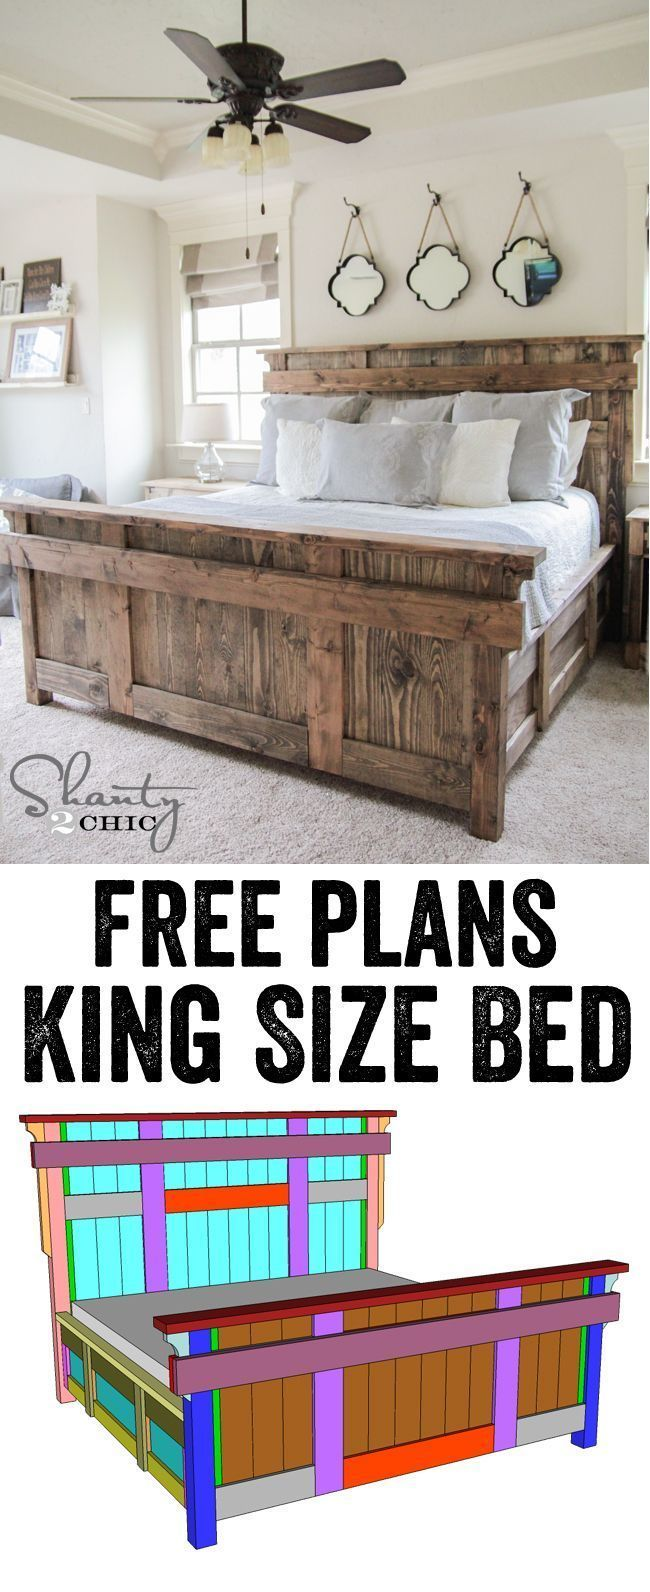 DIY King Size Bed - Free Woodworking Plans and tutorial by www.shanty-2-chic.......